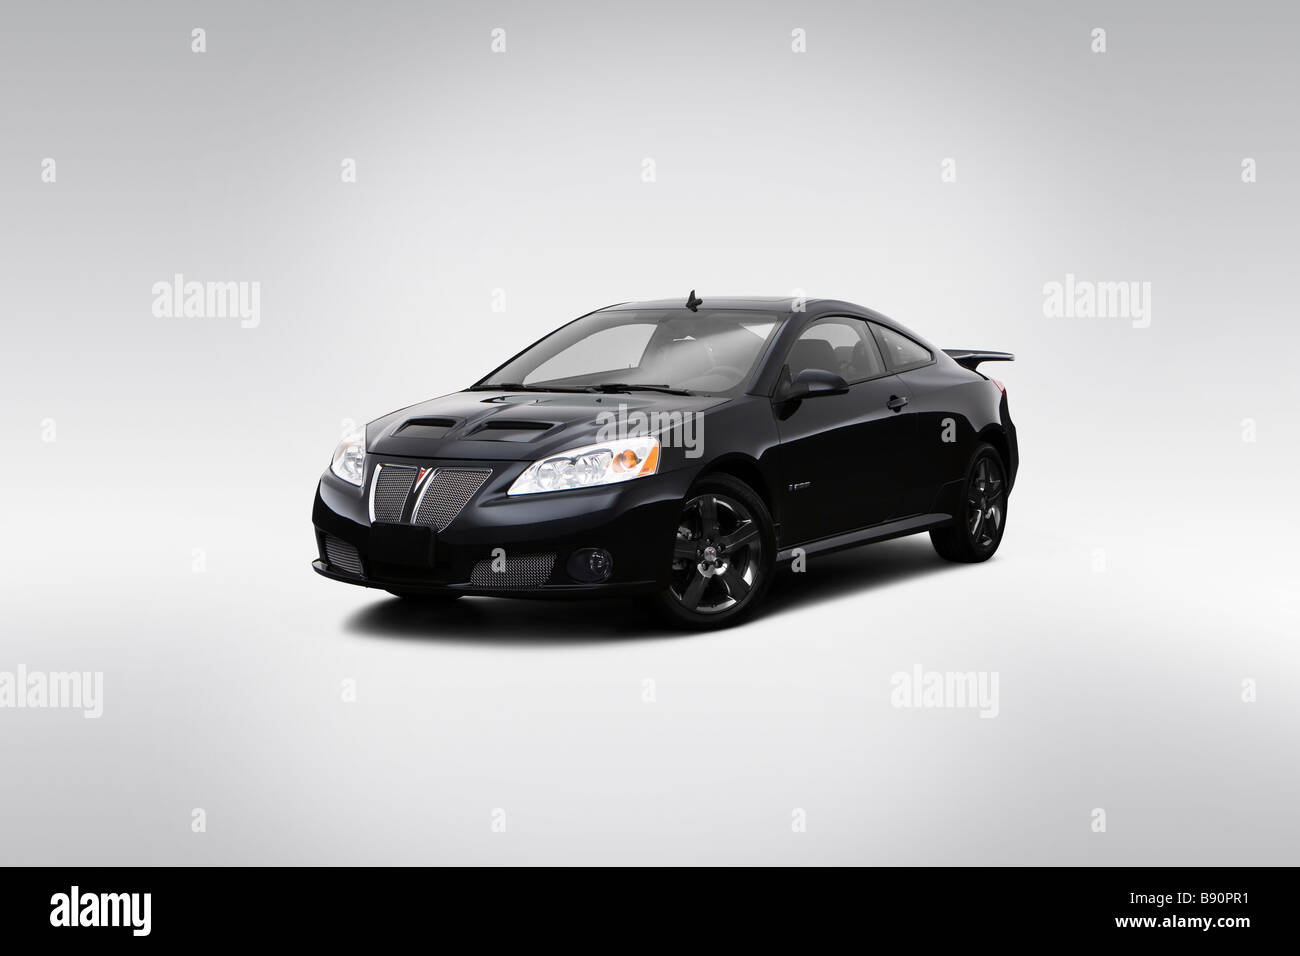 hight resolution of 2009 pontiac g6 gxp in black front angle view